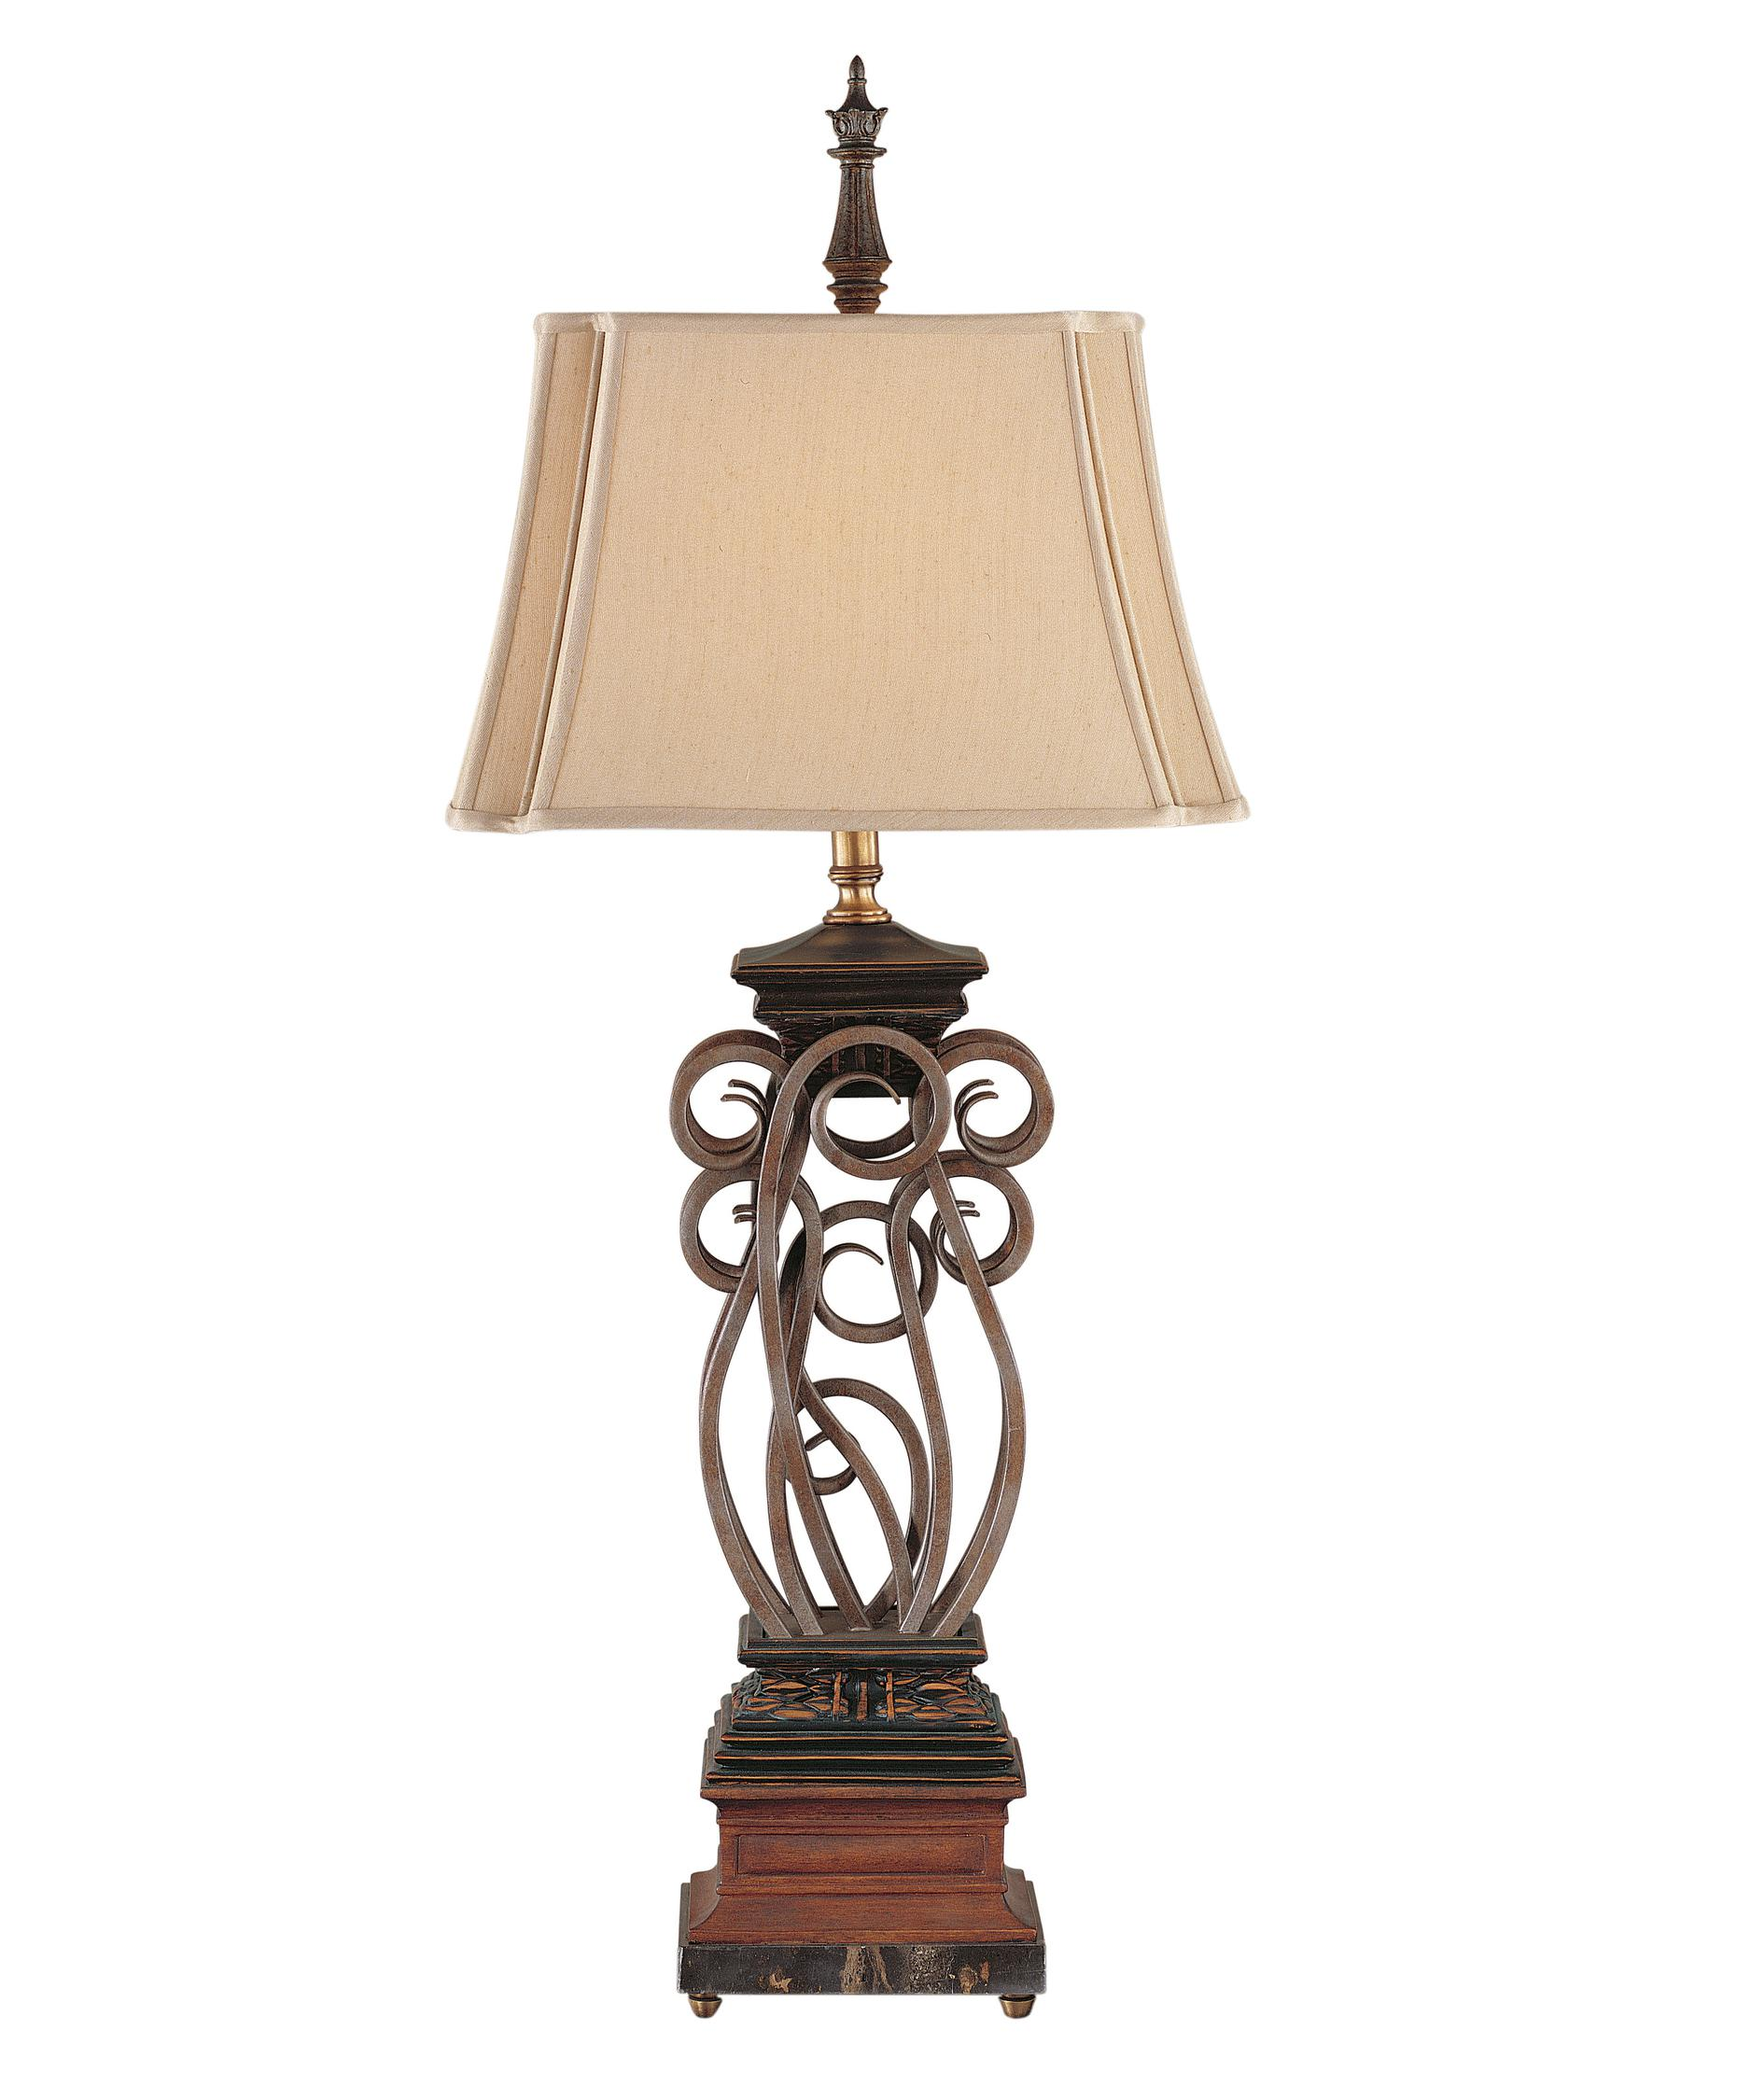 Murray Feiss 9140 Tallulah 34 Inch Table Lamp Capitol